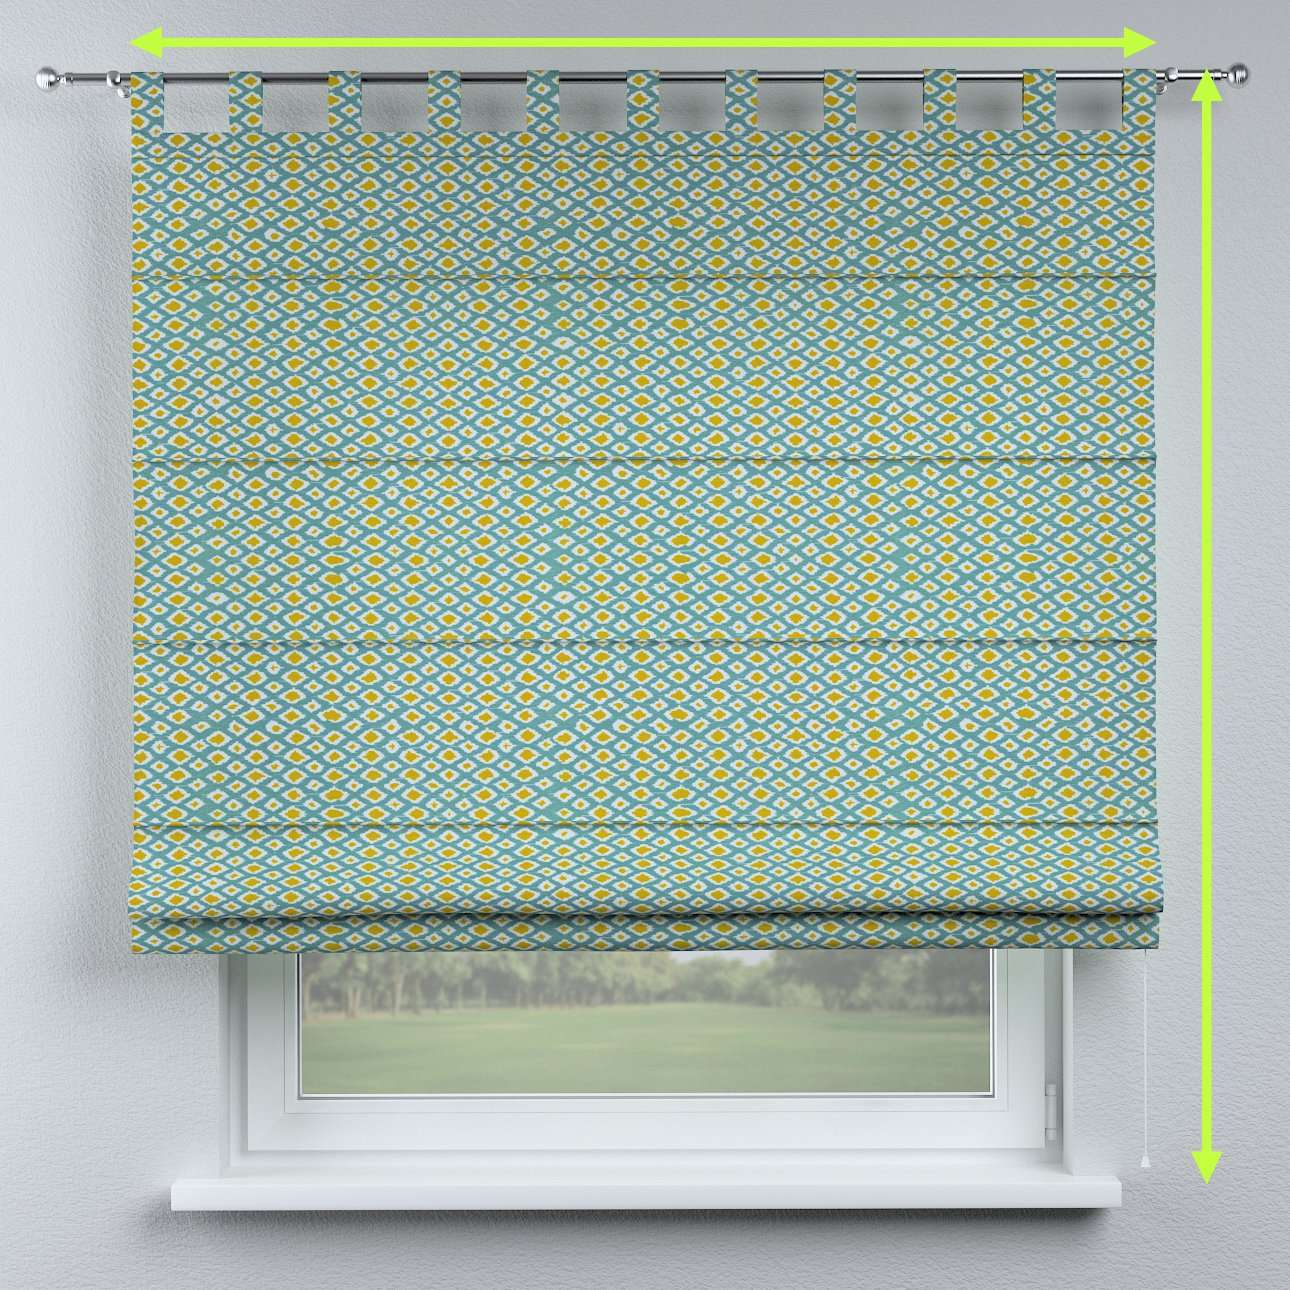 Verona tab top roman blind in collection Comics/Geometrical, fabric: 141-20